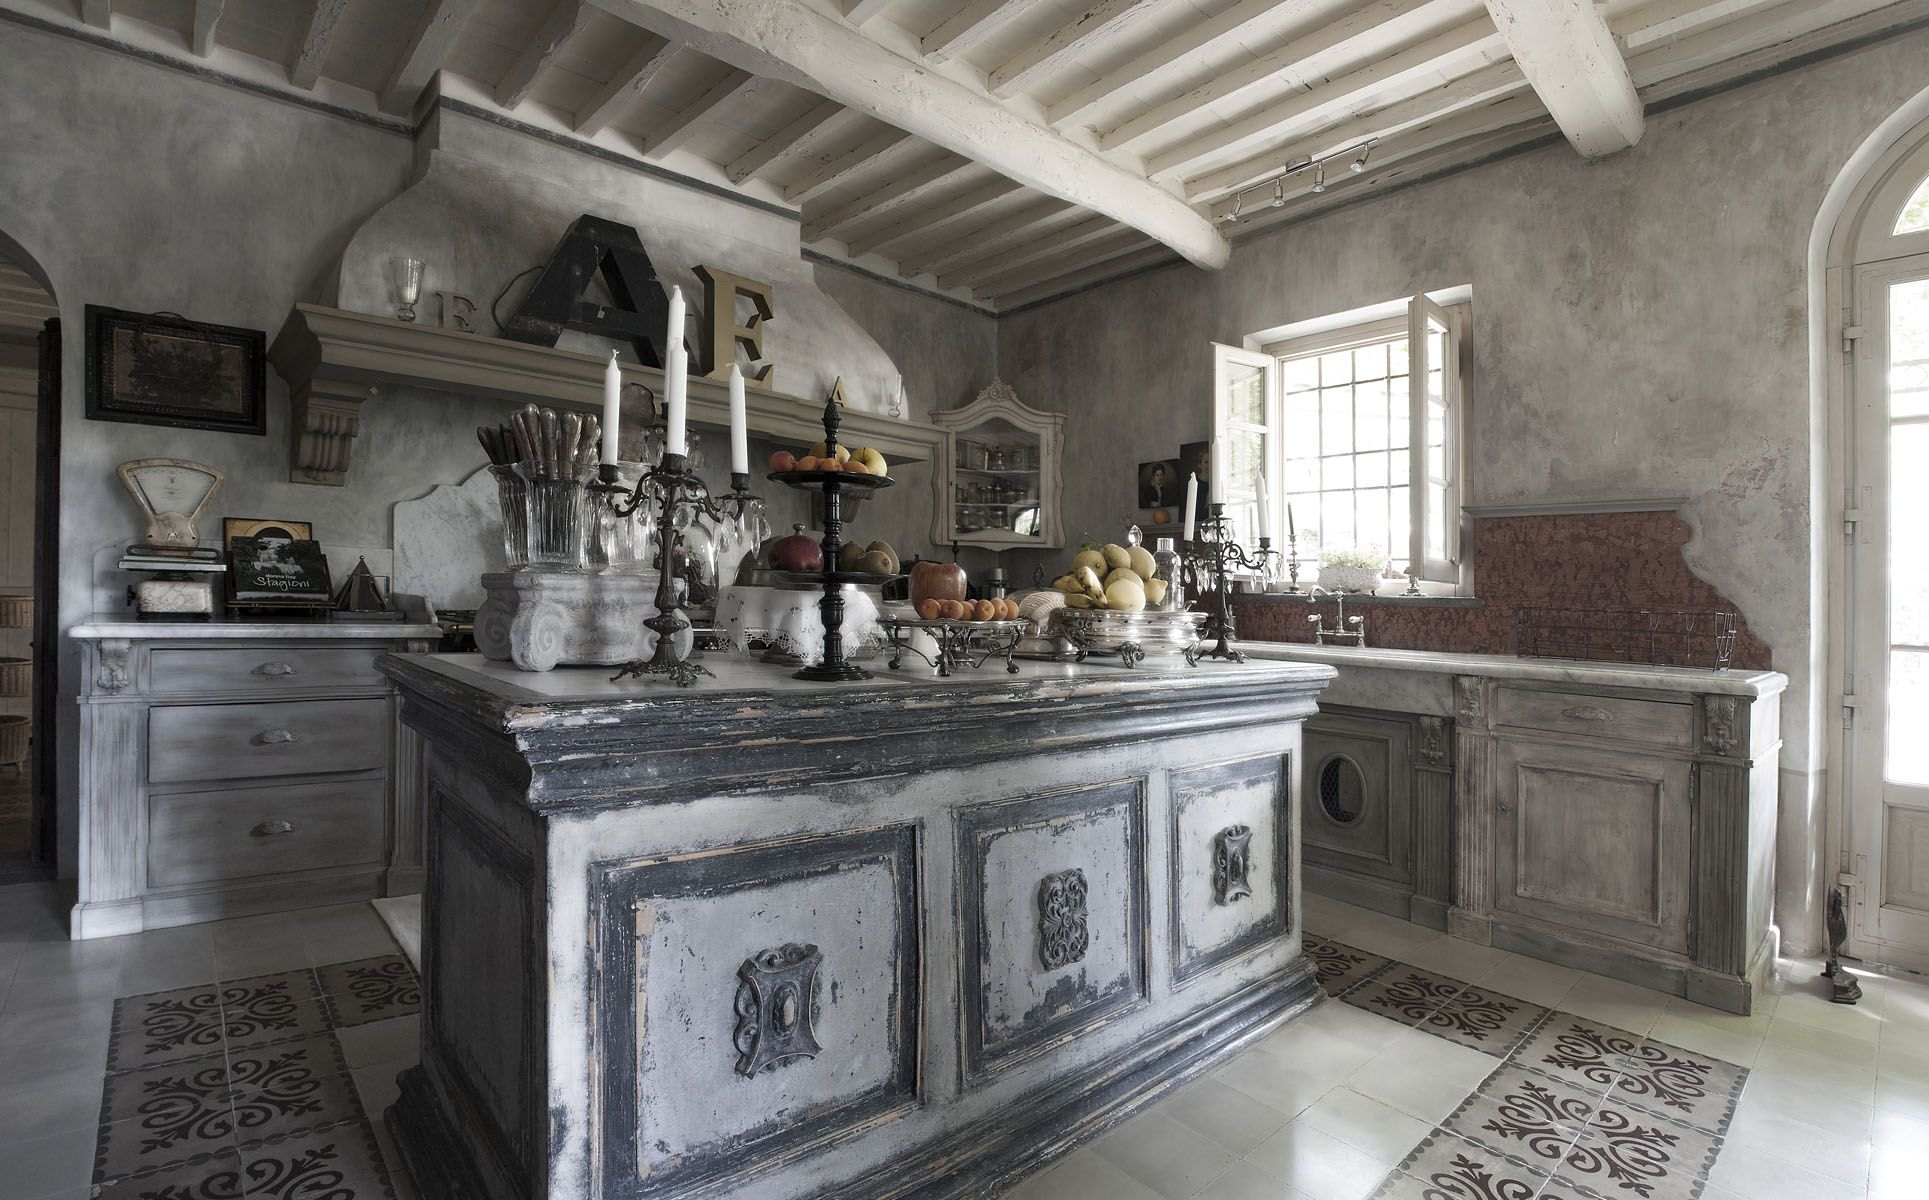 Cucina Stile Francese Photo Gallery Emanuela Marchesini Kitchens Cucina Shabby Chic